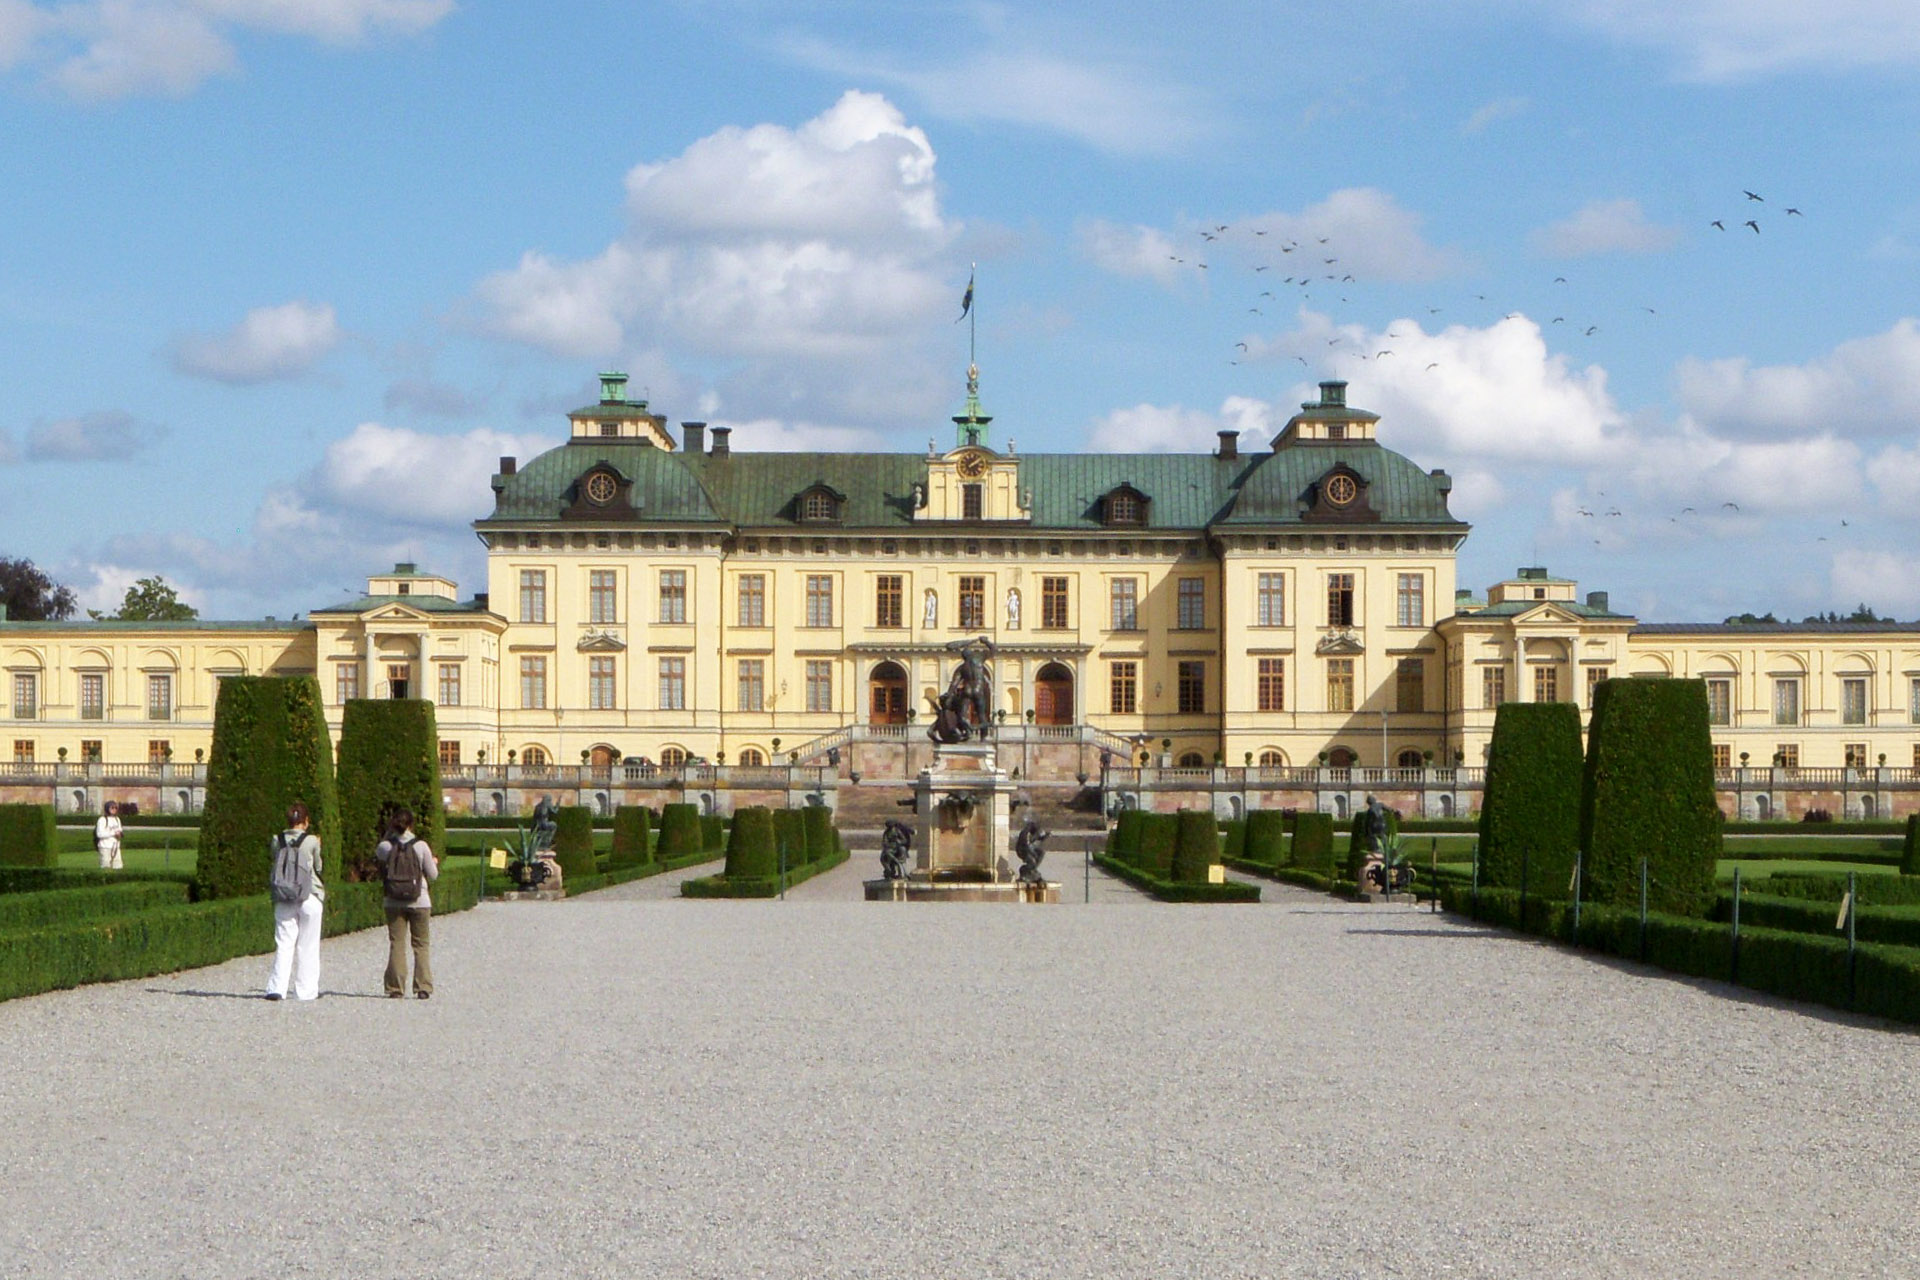 Café & Restaurant at the Drottningholm Palace in Sweden uses PALUX-Technology